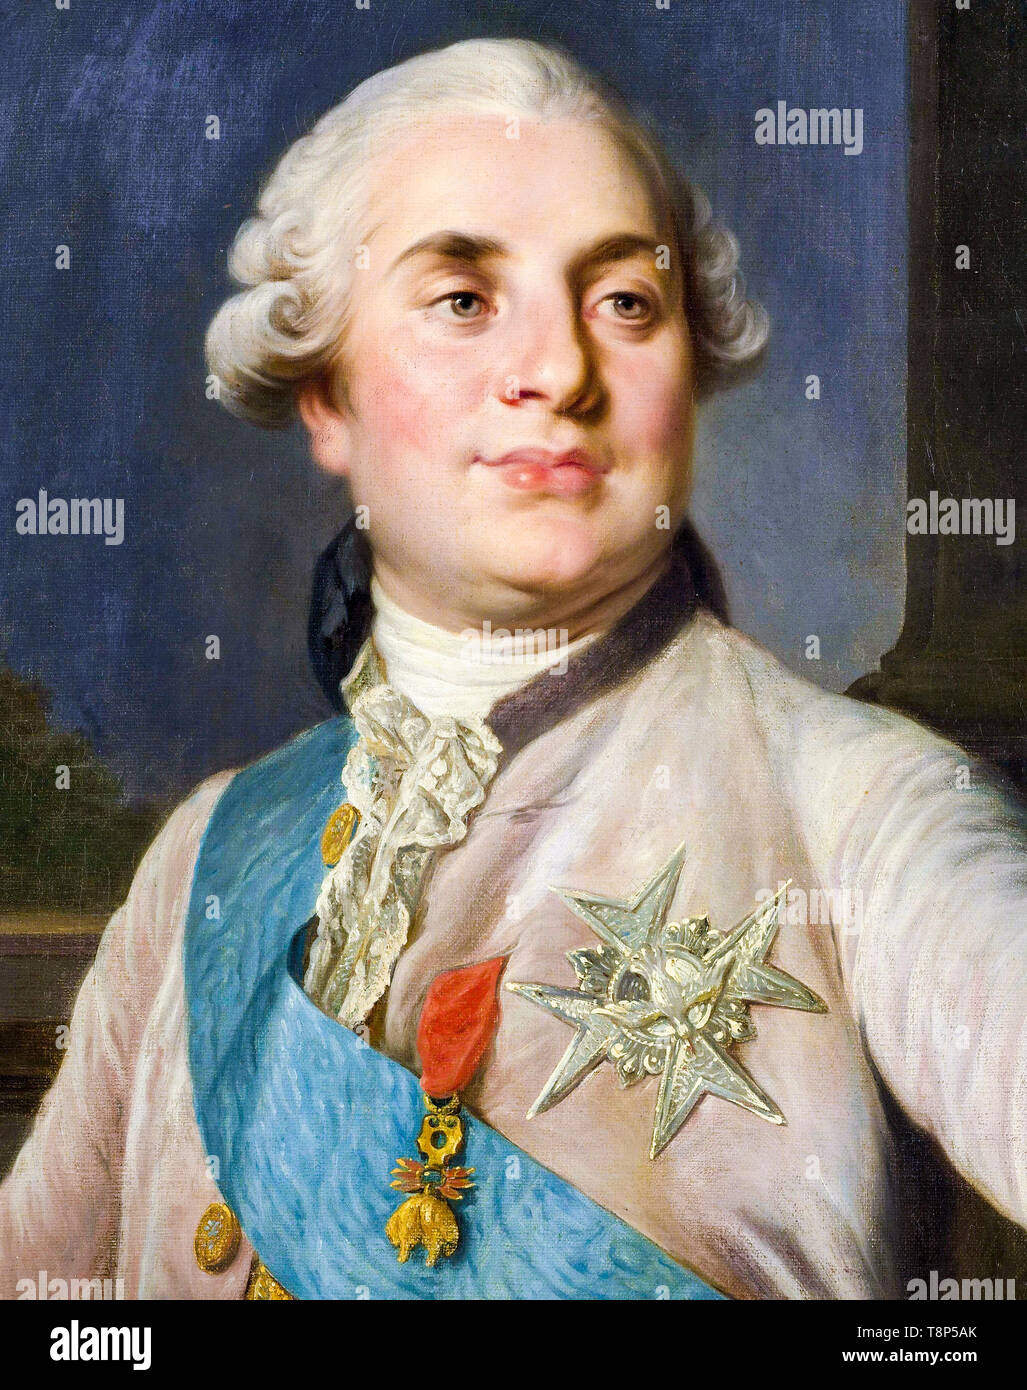 Portrait of Louis XVI, King of France, c. 1777 RKM Stock Photo